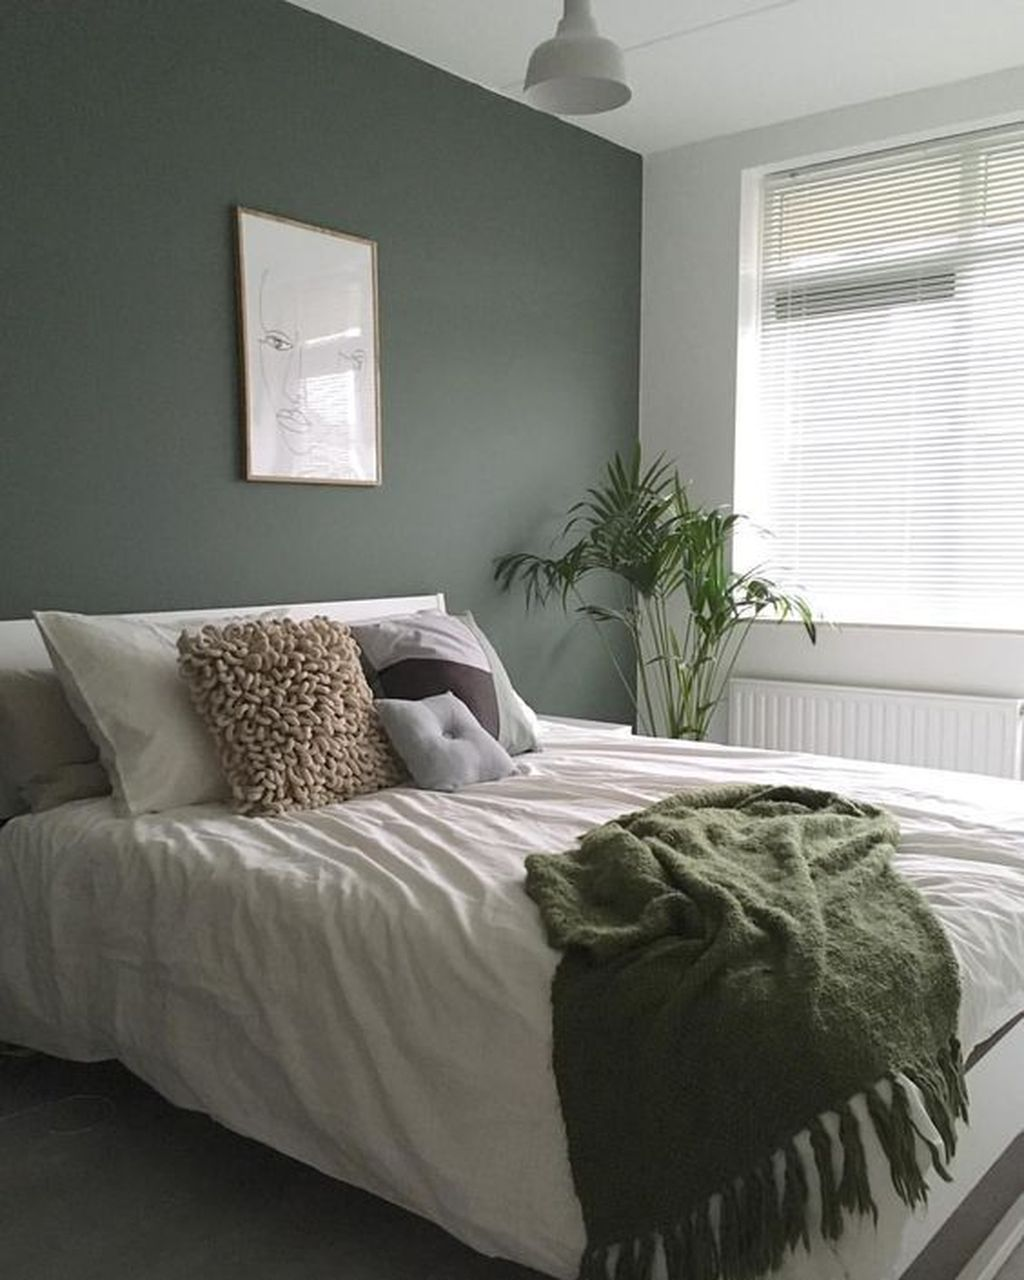 5 Calming Bedroom Design Ideas The Budget Decorator: 50 Beautiful And Calm Green Bedroom Decoration Ideas